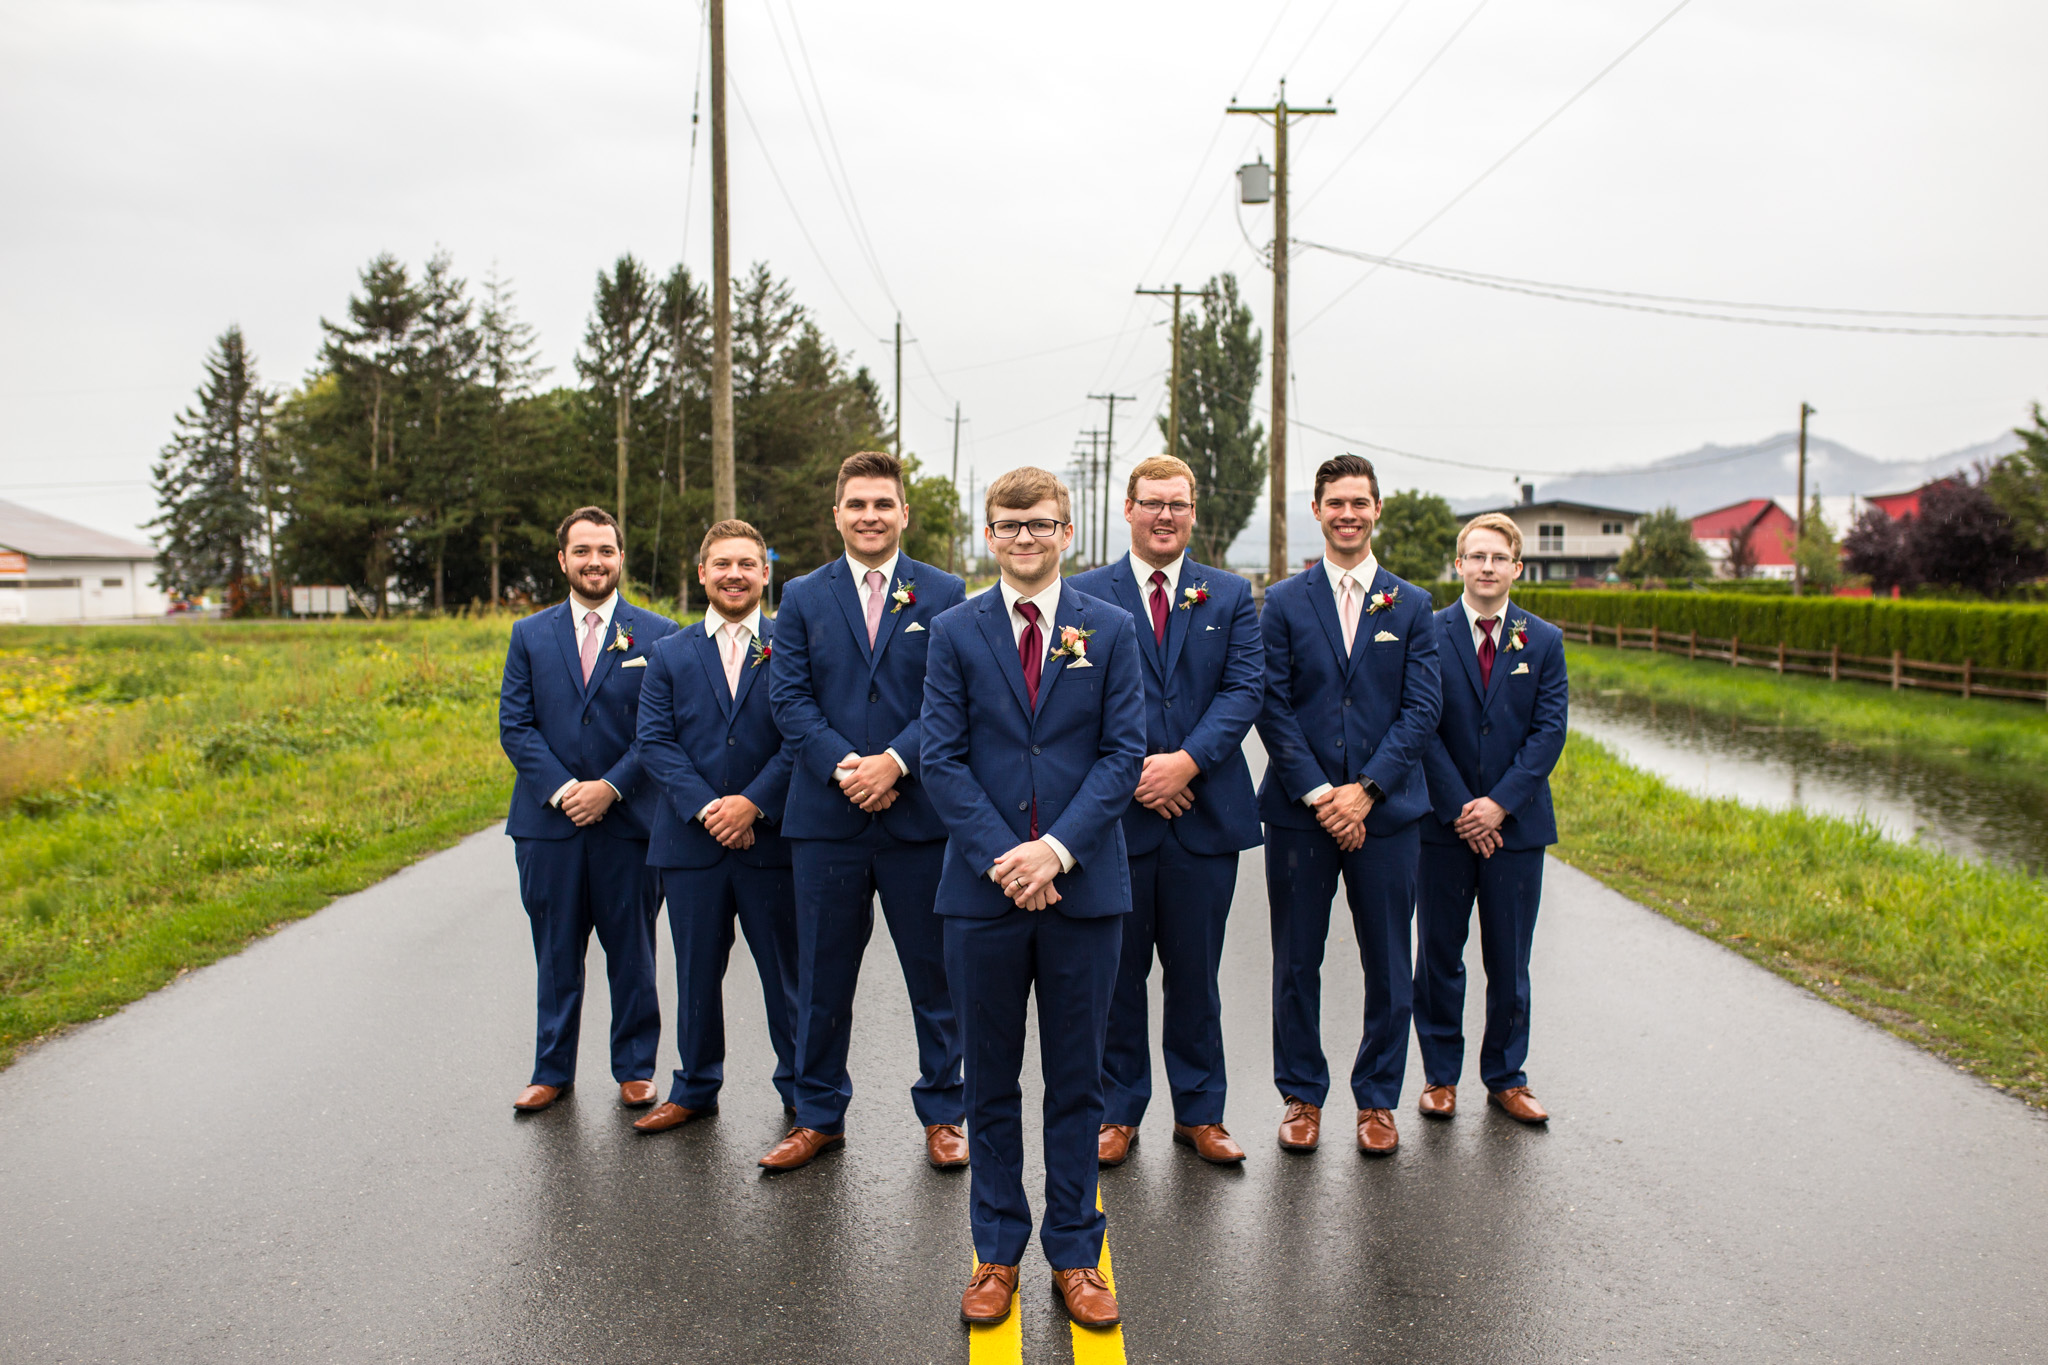 Abbotsford Wedding Photographer-48.JPG